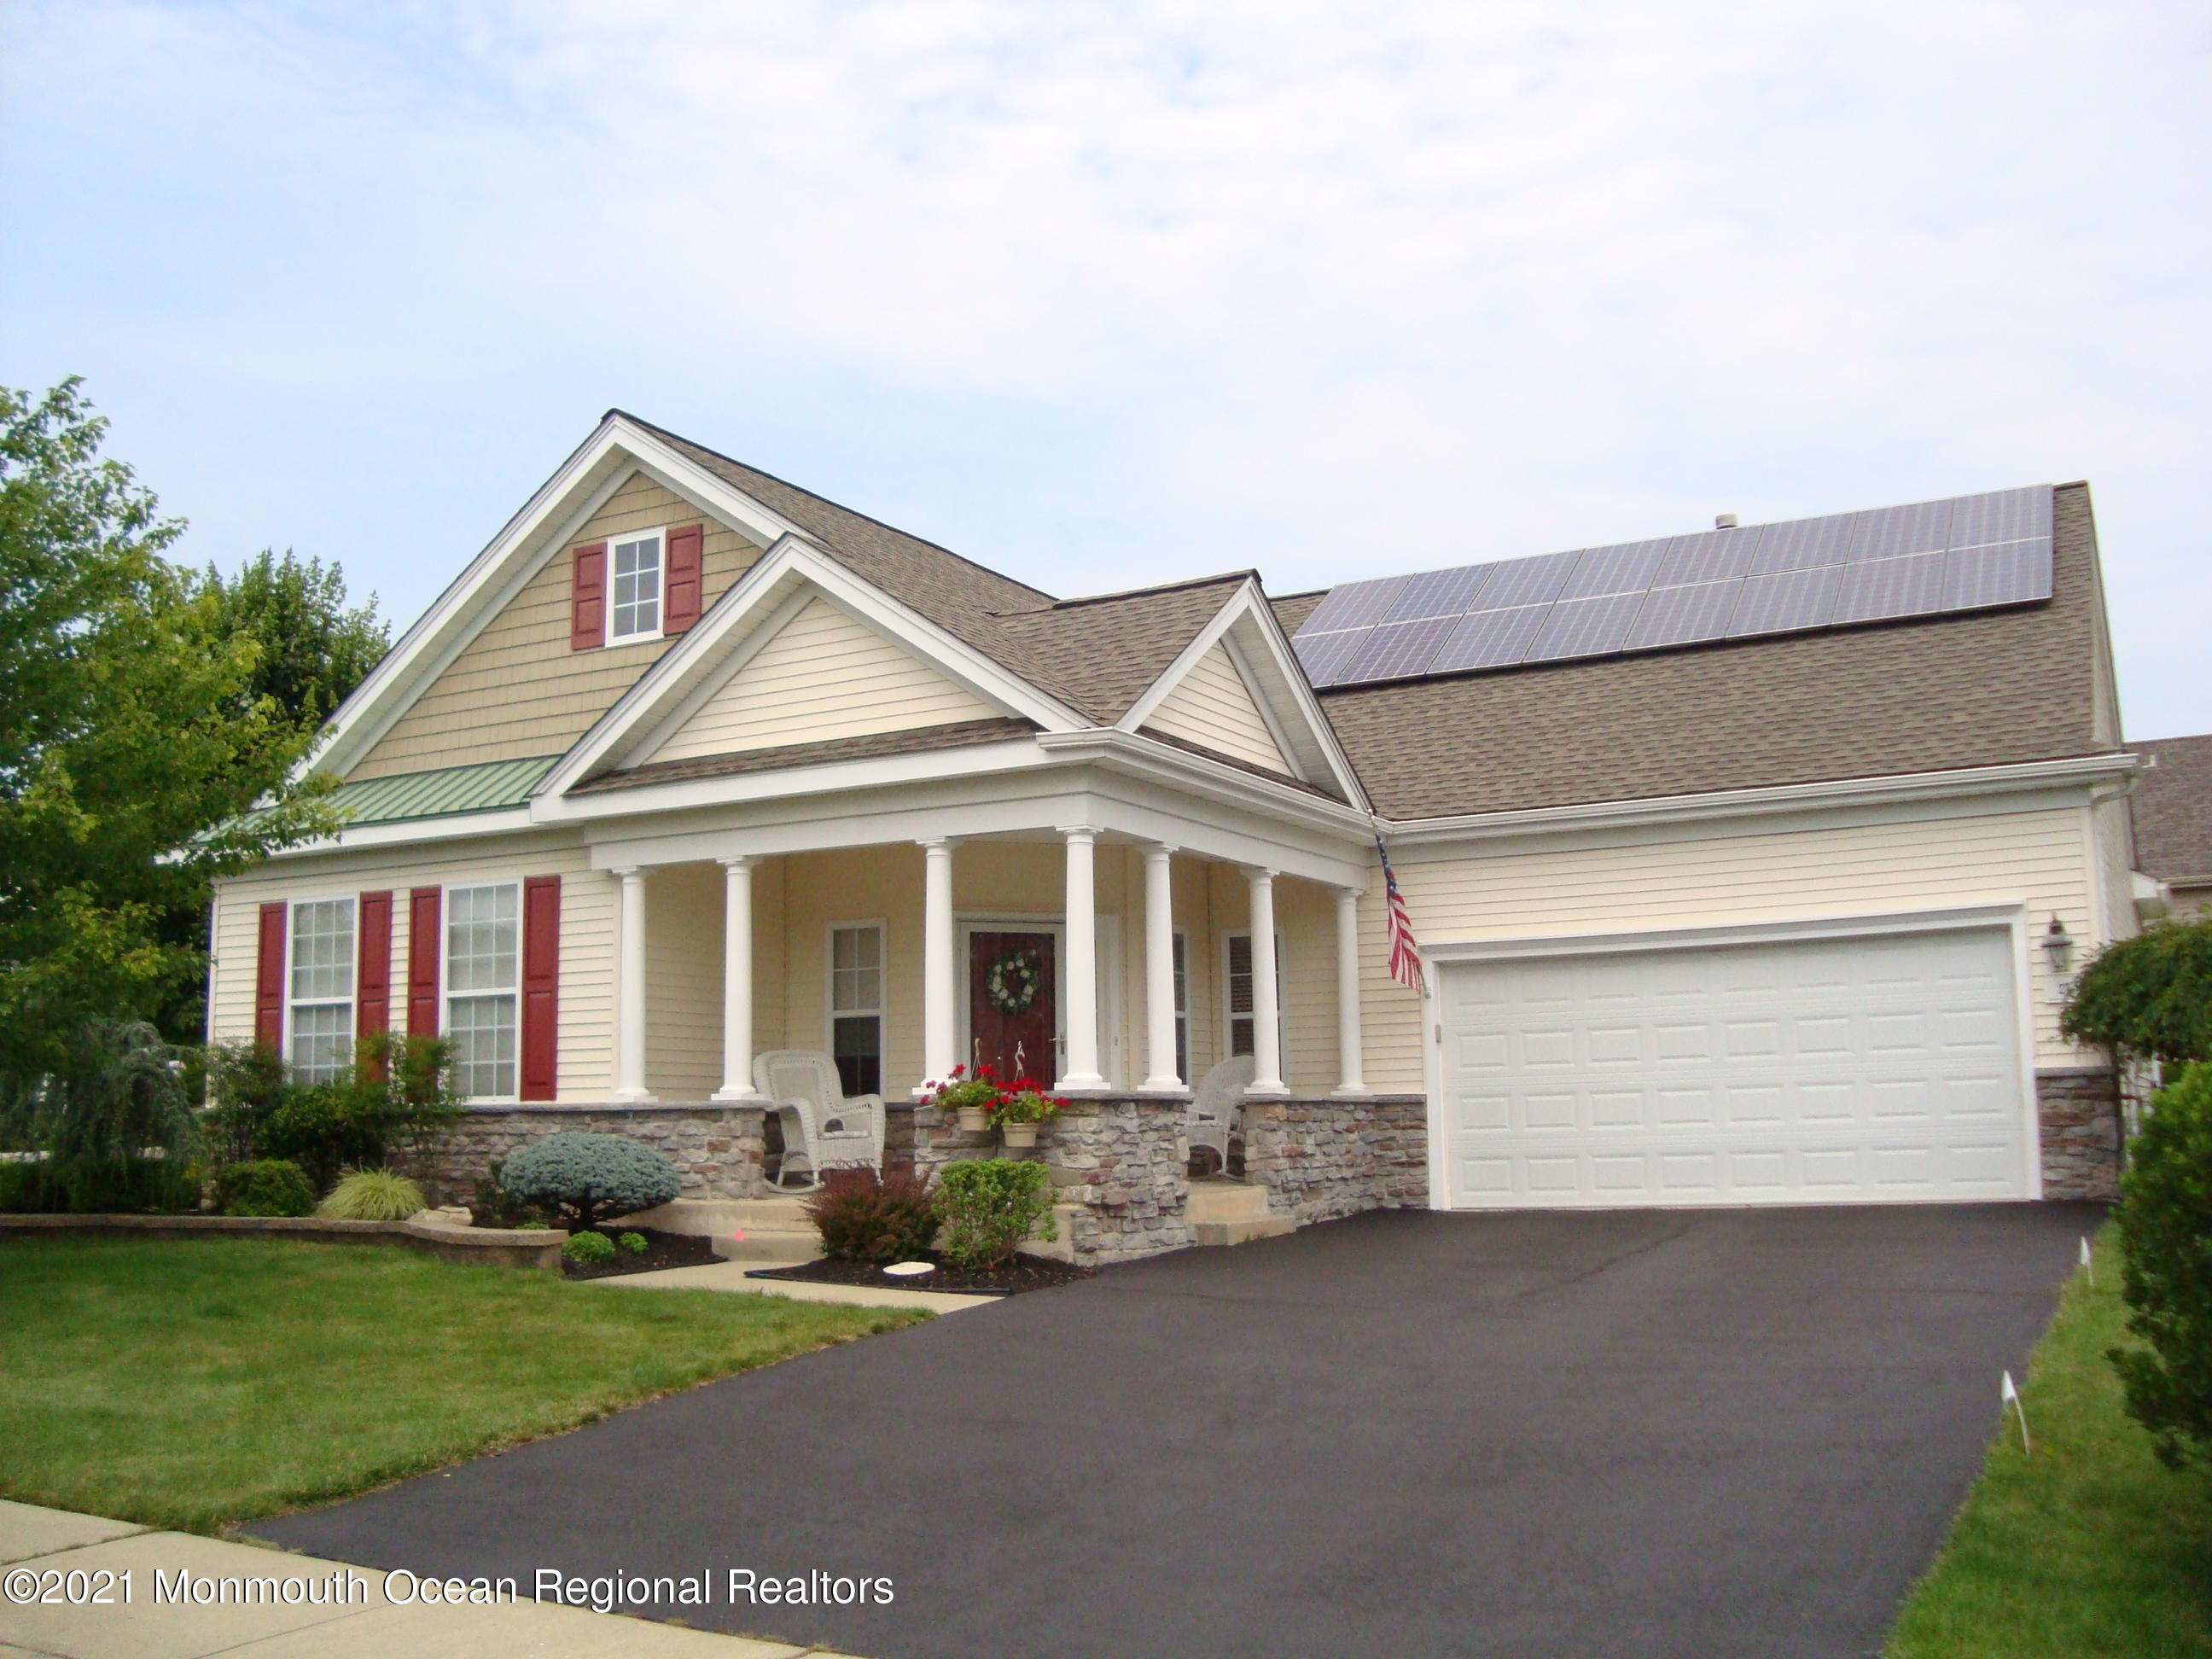 Gorgeous 2/2 Brielle model with a 5 year old 50 year Timberline roof, solar panels (check supplements for details), an oversized corner lot, 3 season room, covered porch, rear patio, upgraded kitchen with SS appliance, professional window treatments, professionally landscaped, Mannington Vinyl floors and much more. Move-in condition.  HERITAGE POINT IS ONE OF THE MOST DESIRABLE ACTIVE-ADULT COMMUNITIES IN OCEAN COUNTY BOASTING 2 CLUBHOUSES; TENNIS; INDOOR AND OUTDOOR POOLS; WELL-EQUIPPED FITNESS CENTER AND SO MUCH MORE!!! LOW MAINTENANCE FEES!!! just a few minutes to Barnegat bay and 15 minutes to LBI with its 18 miles of sandy beaches and 40 minutes to AC. This is retirement at its best. Solar panel 20 year lease is in its 5th year with a fixed rate of $72.09. Dishwasher is 2 years old. Washer is 3-4 years old. All appliances under maintenance contract including air, heat and water heater.